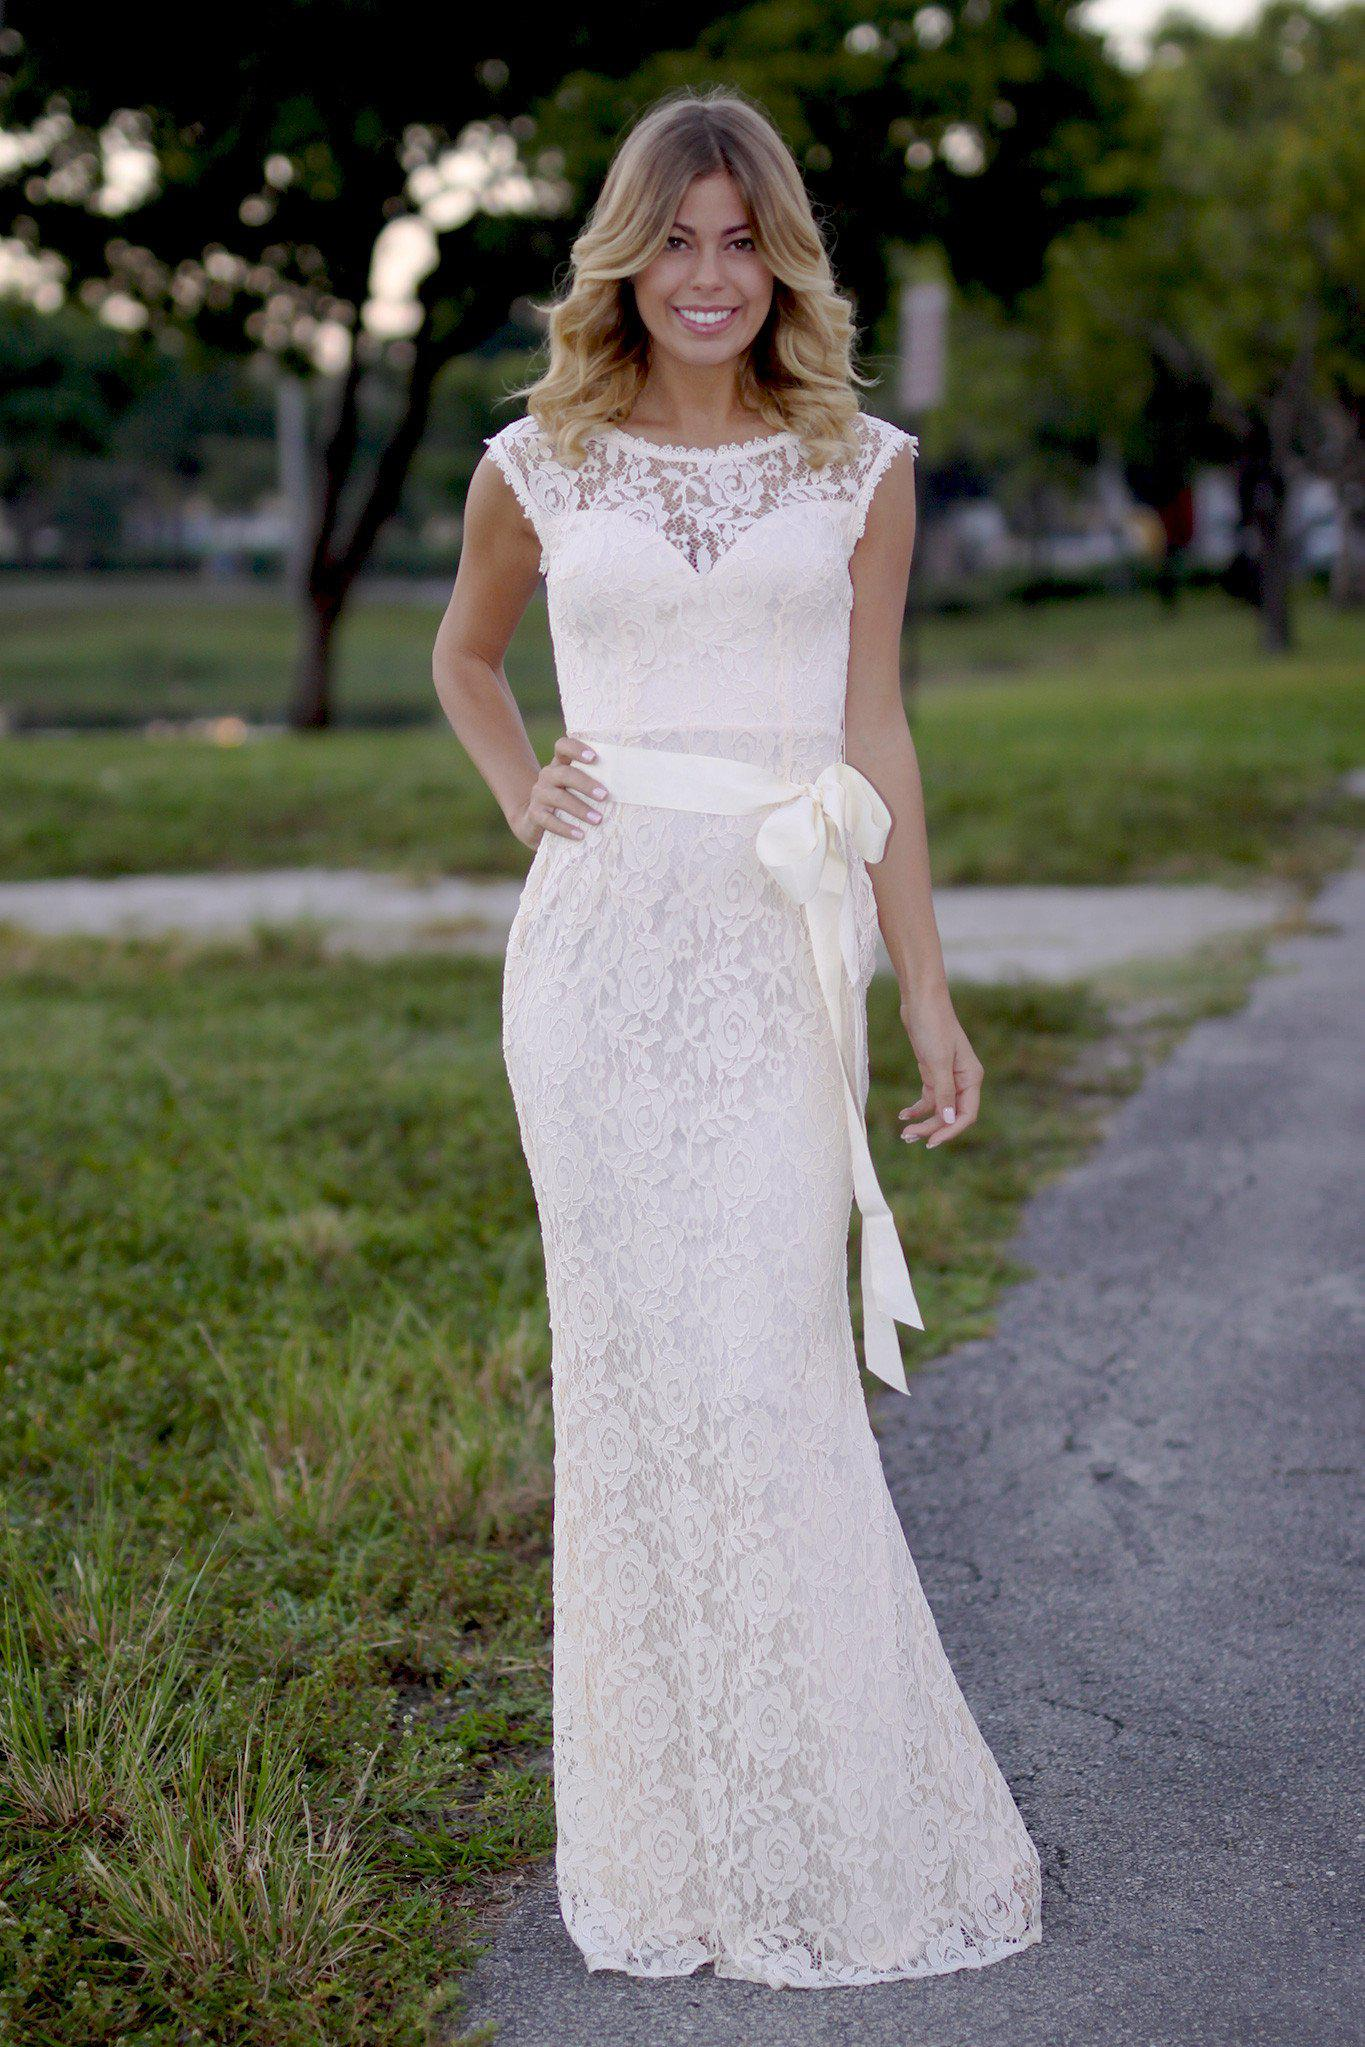 beige lace maxi dress with bow